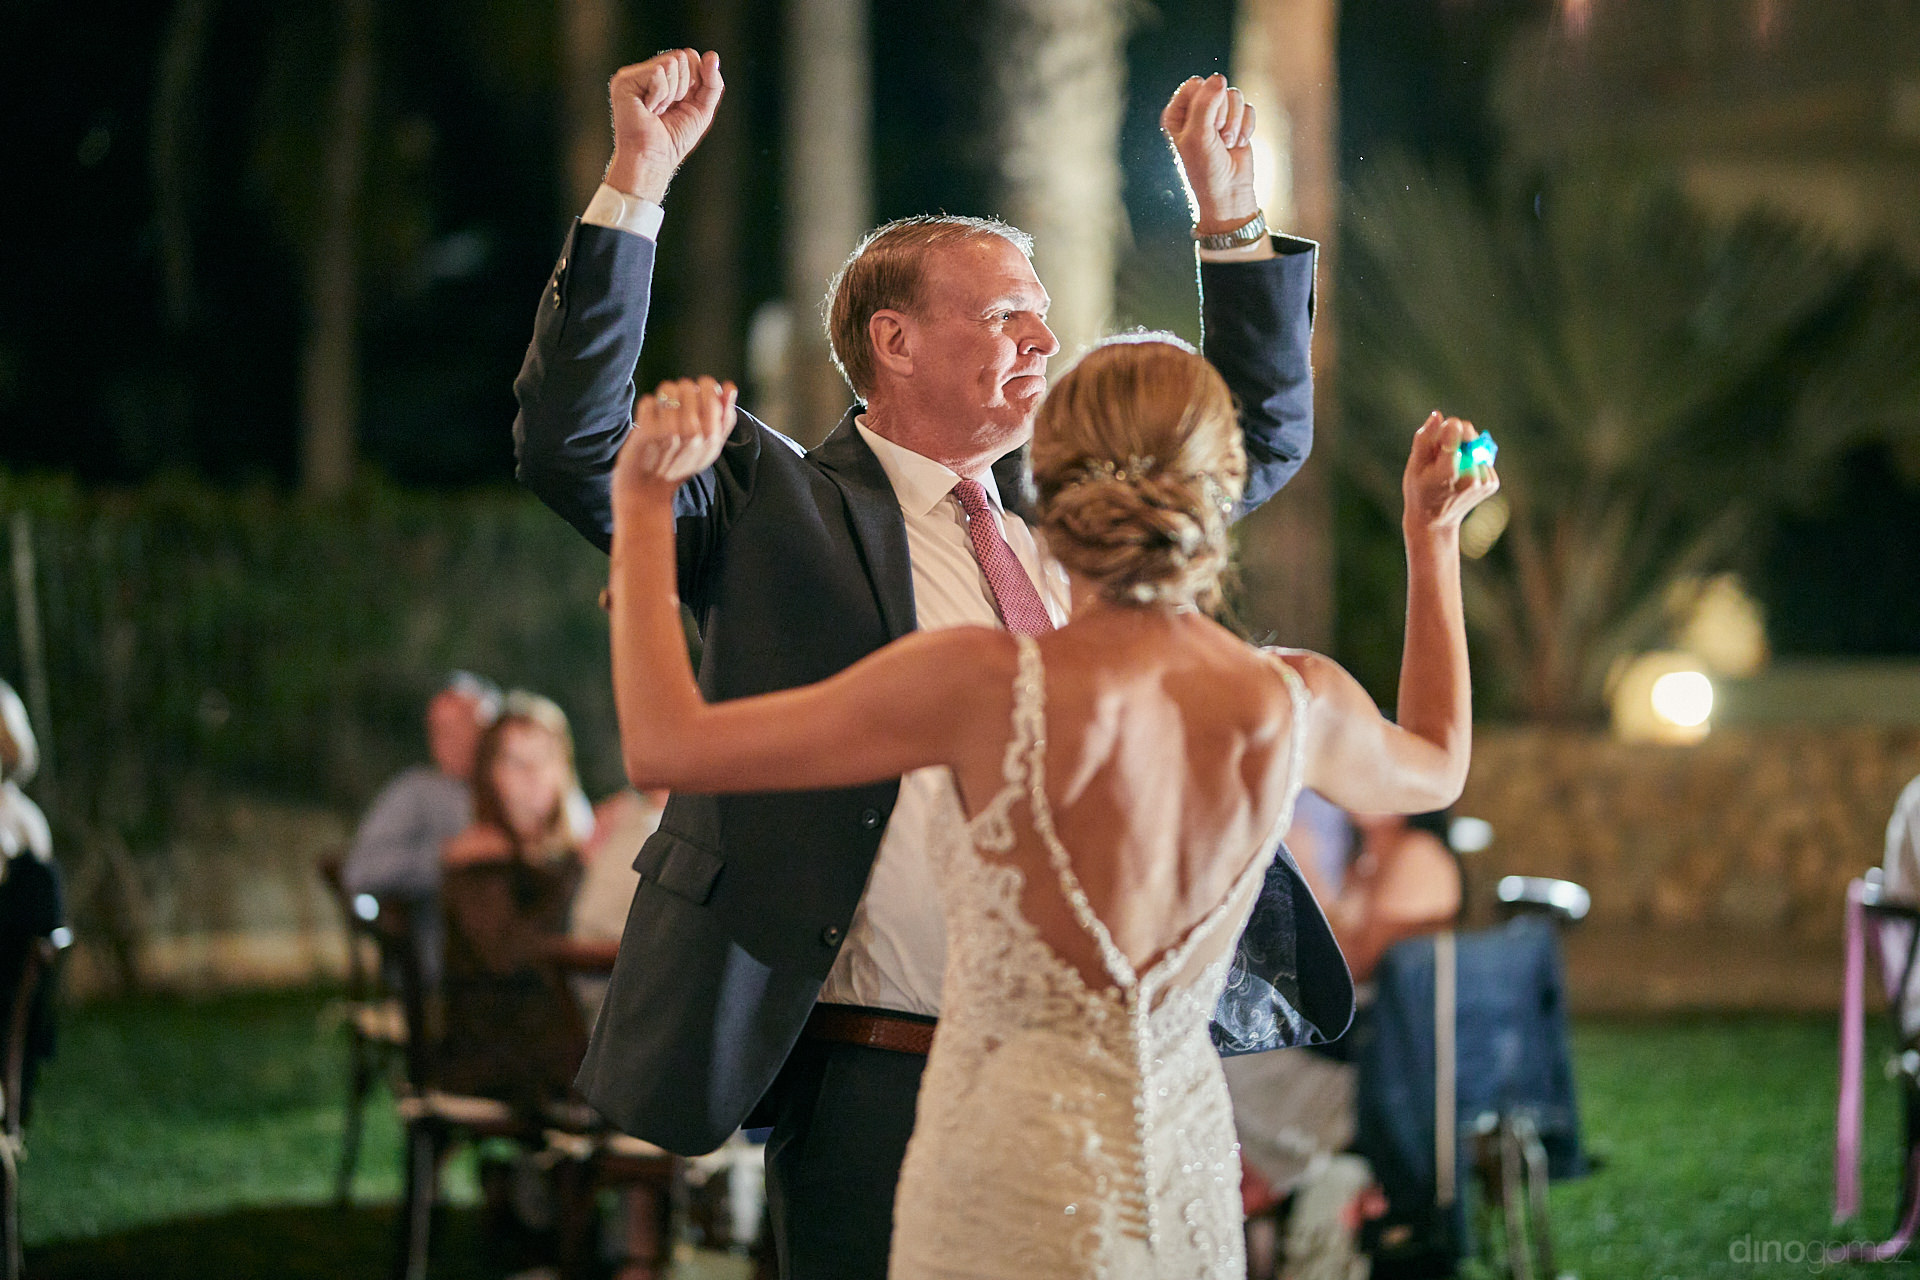 Wedding Planners In Cabo San Lucas Prepared This Unique Moment